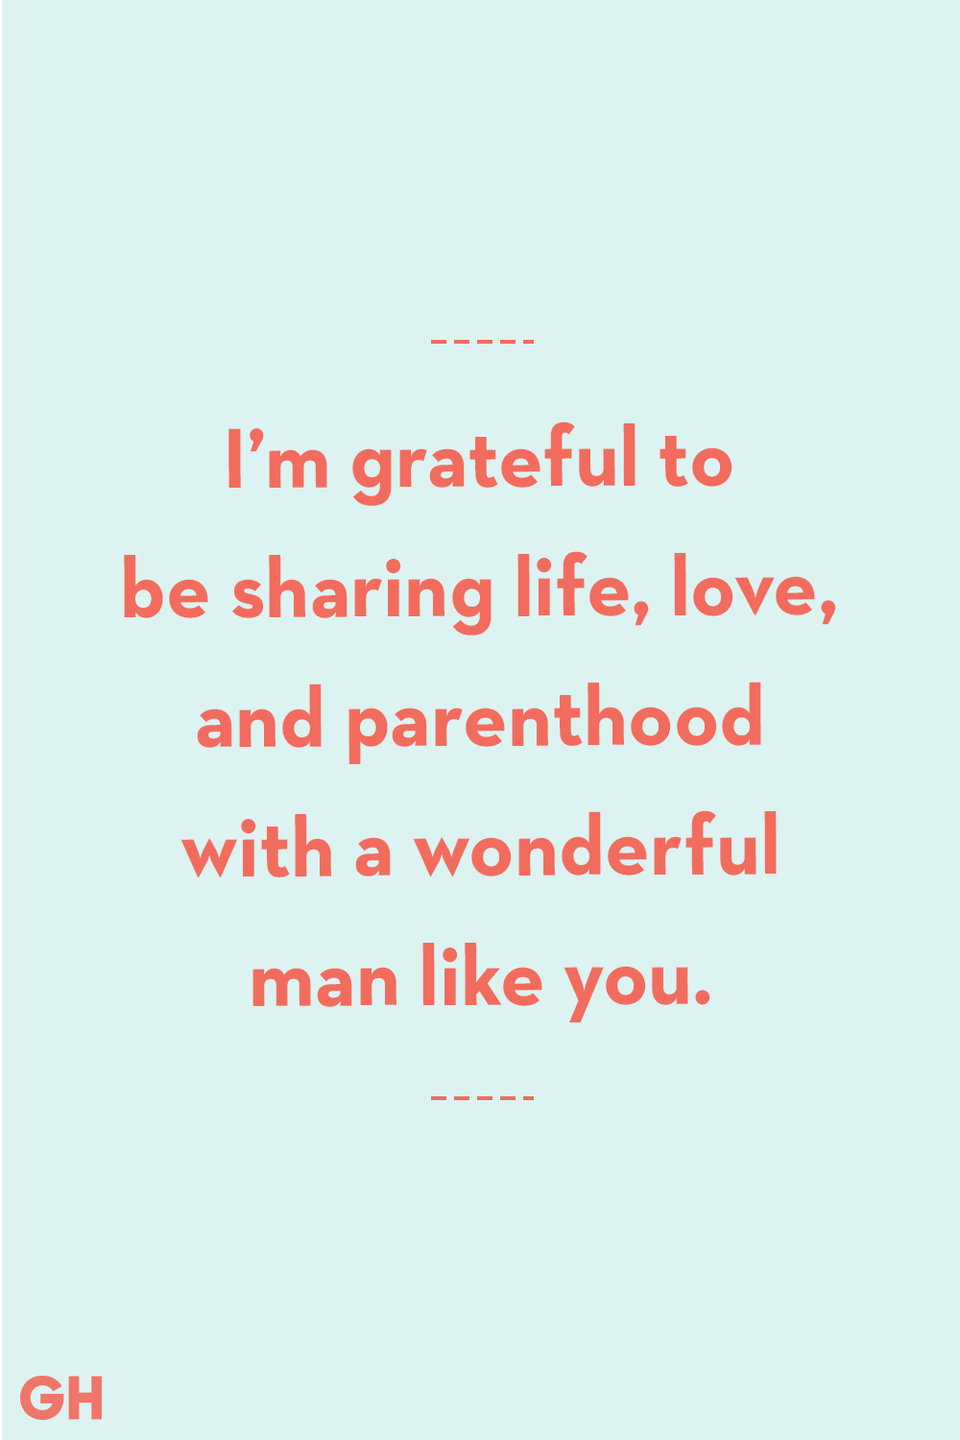 <p>I'm grateful to be sharing life, love, and parenthood with a wonderful man like you.</p>